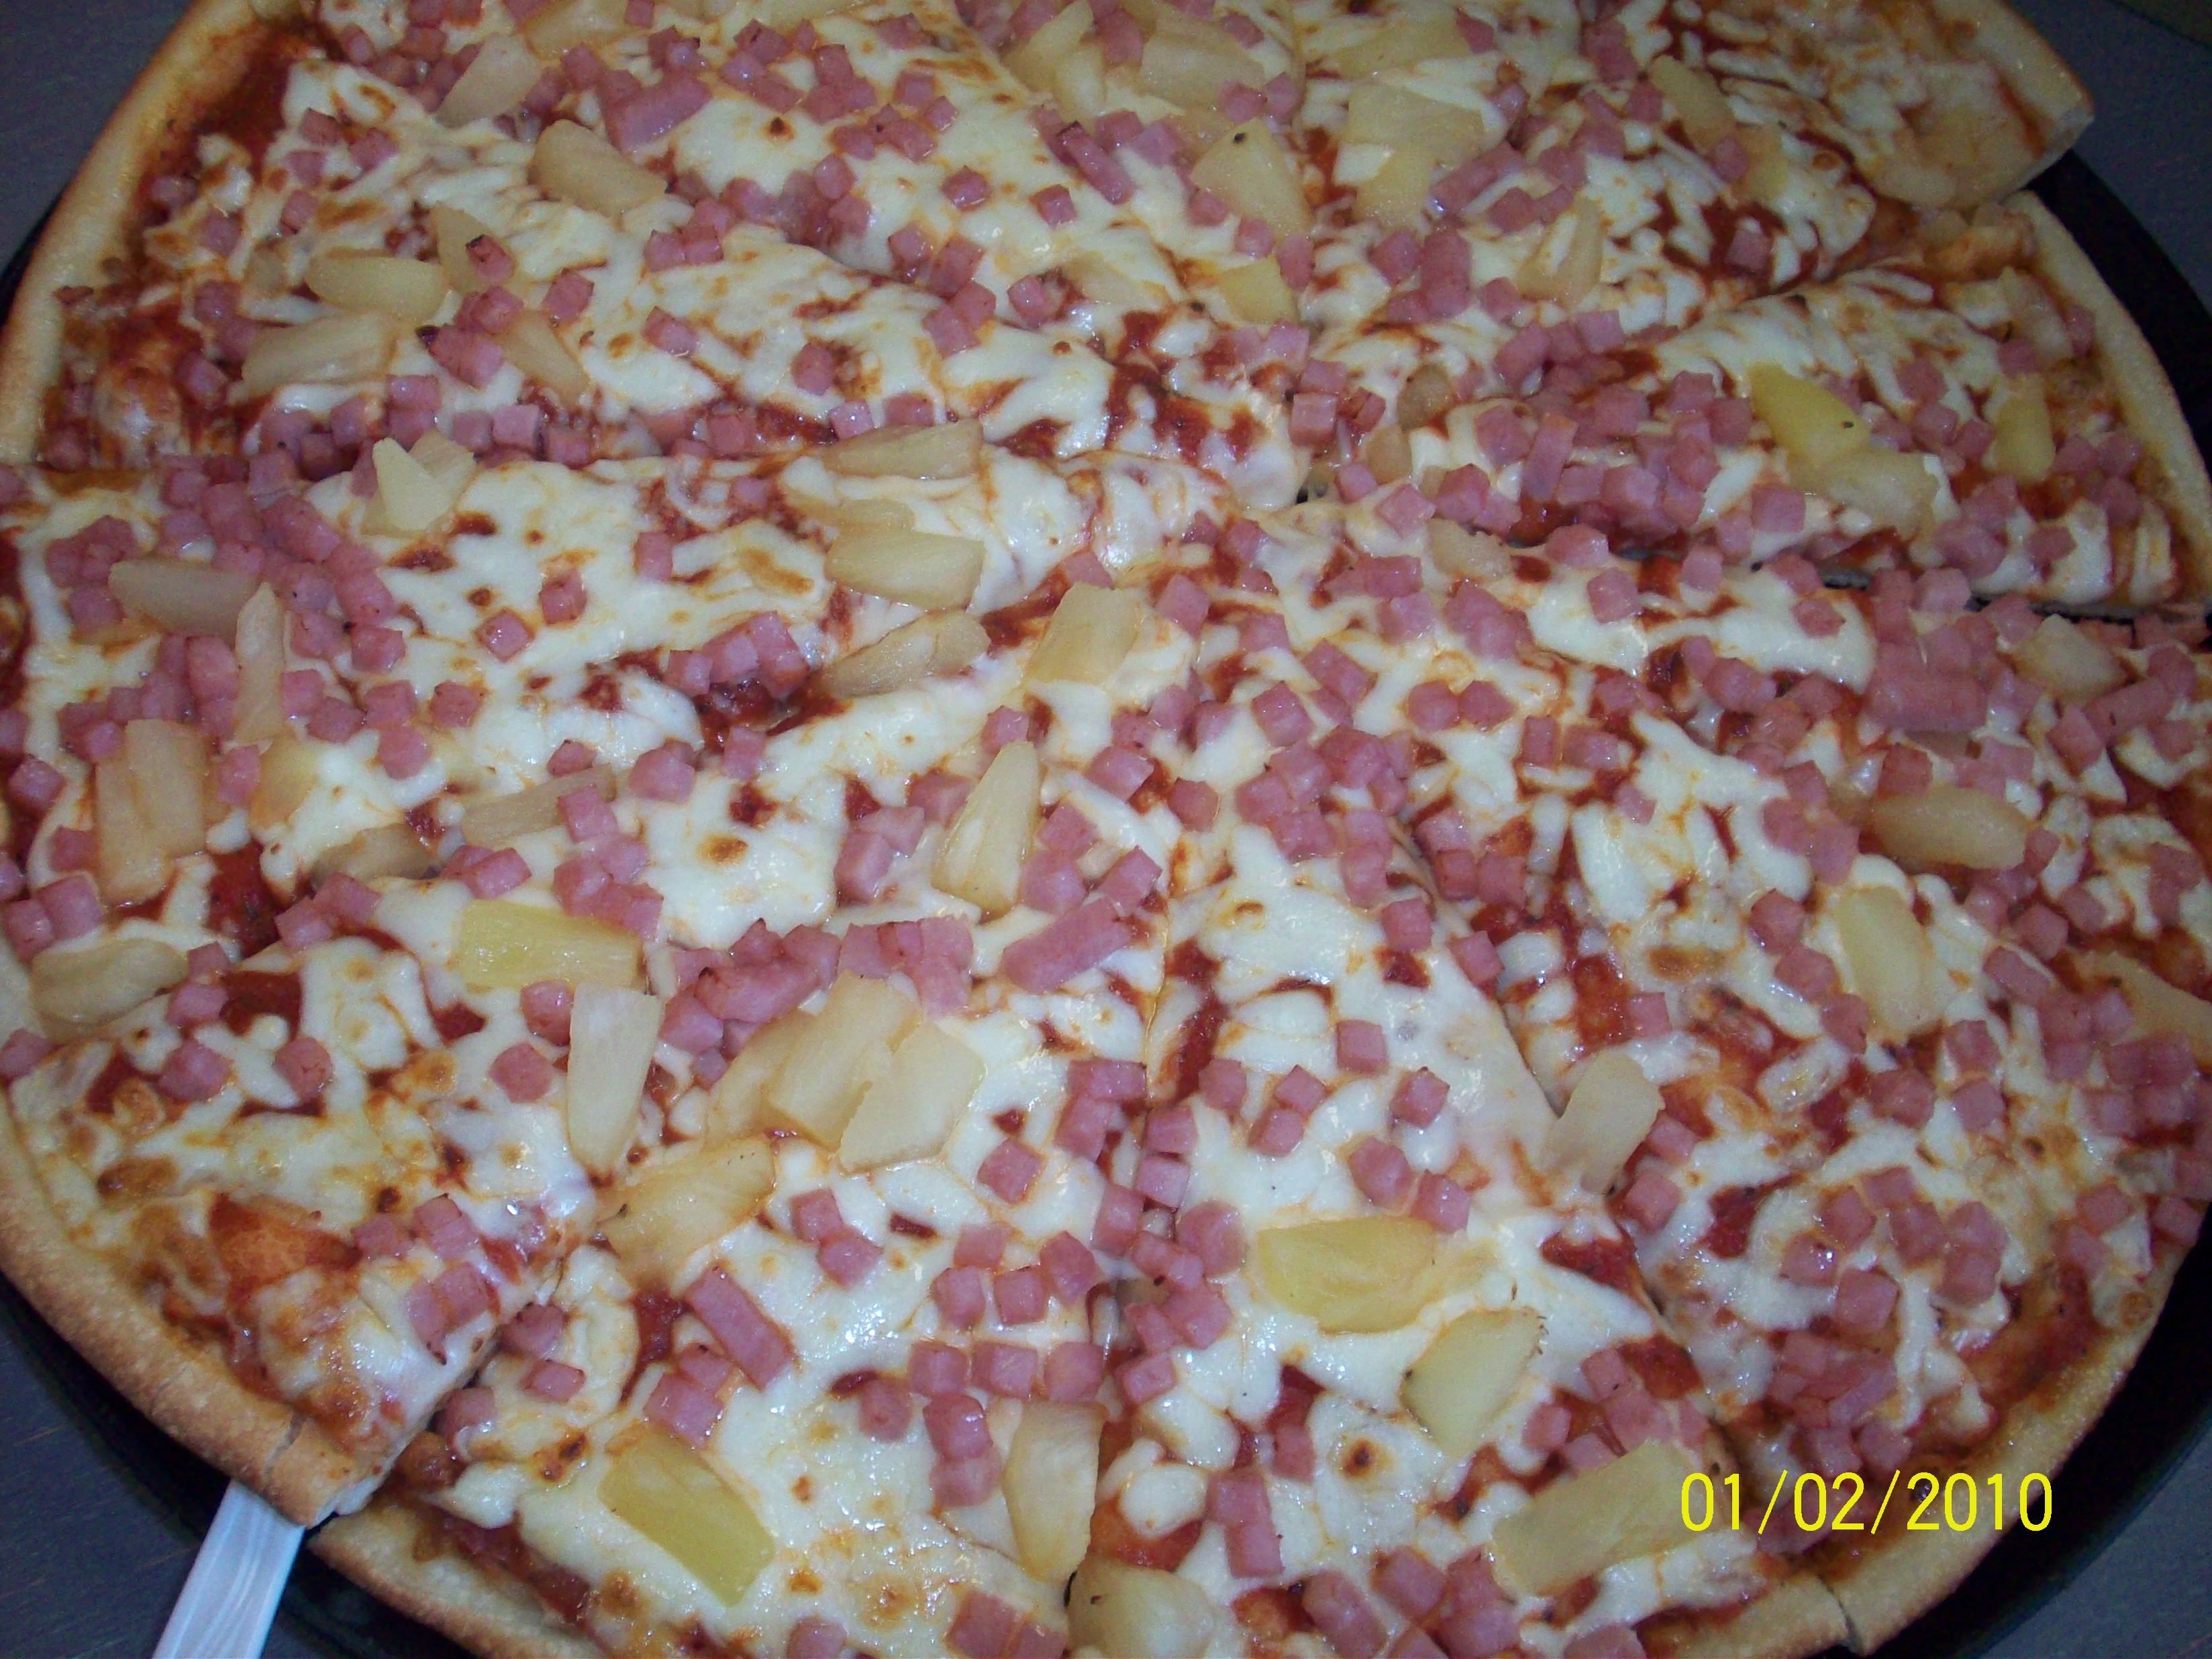 http://foodloader.net/cutie_2010-02-01_Hawaiian_Pizza.jpg